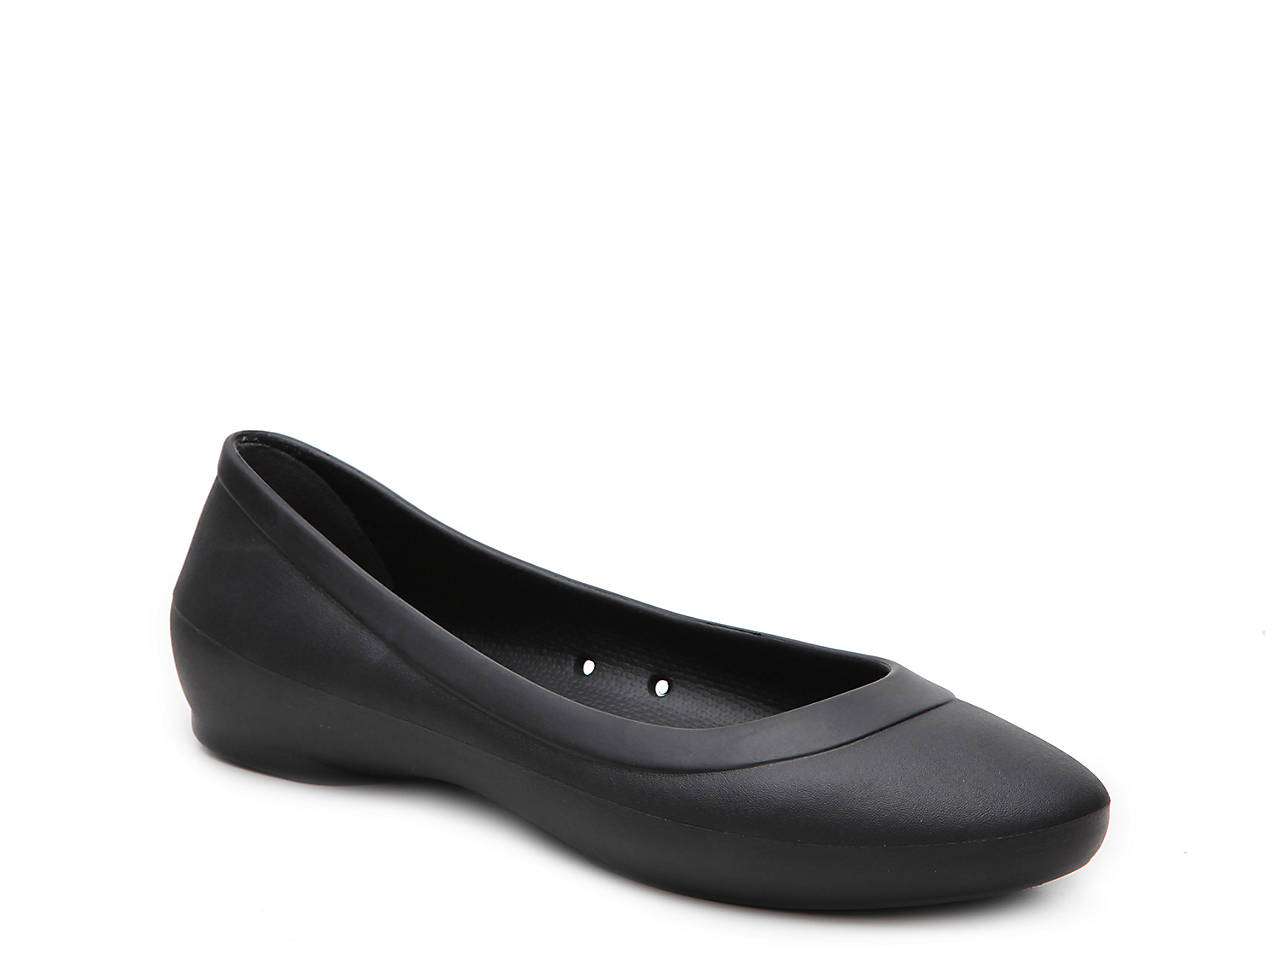 clearance best wholesale CROCS Ballet flats classic online under $60 for sale outlet cost QF3cmnW0a